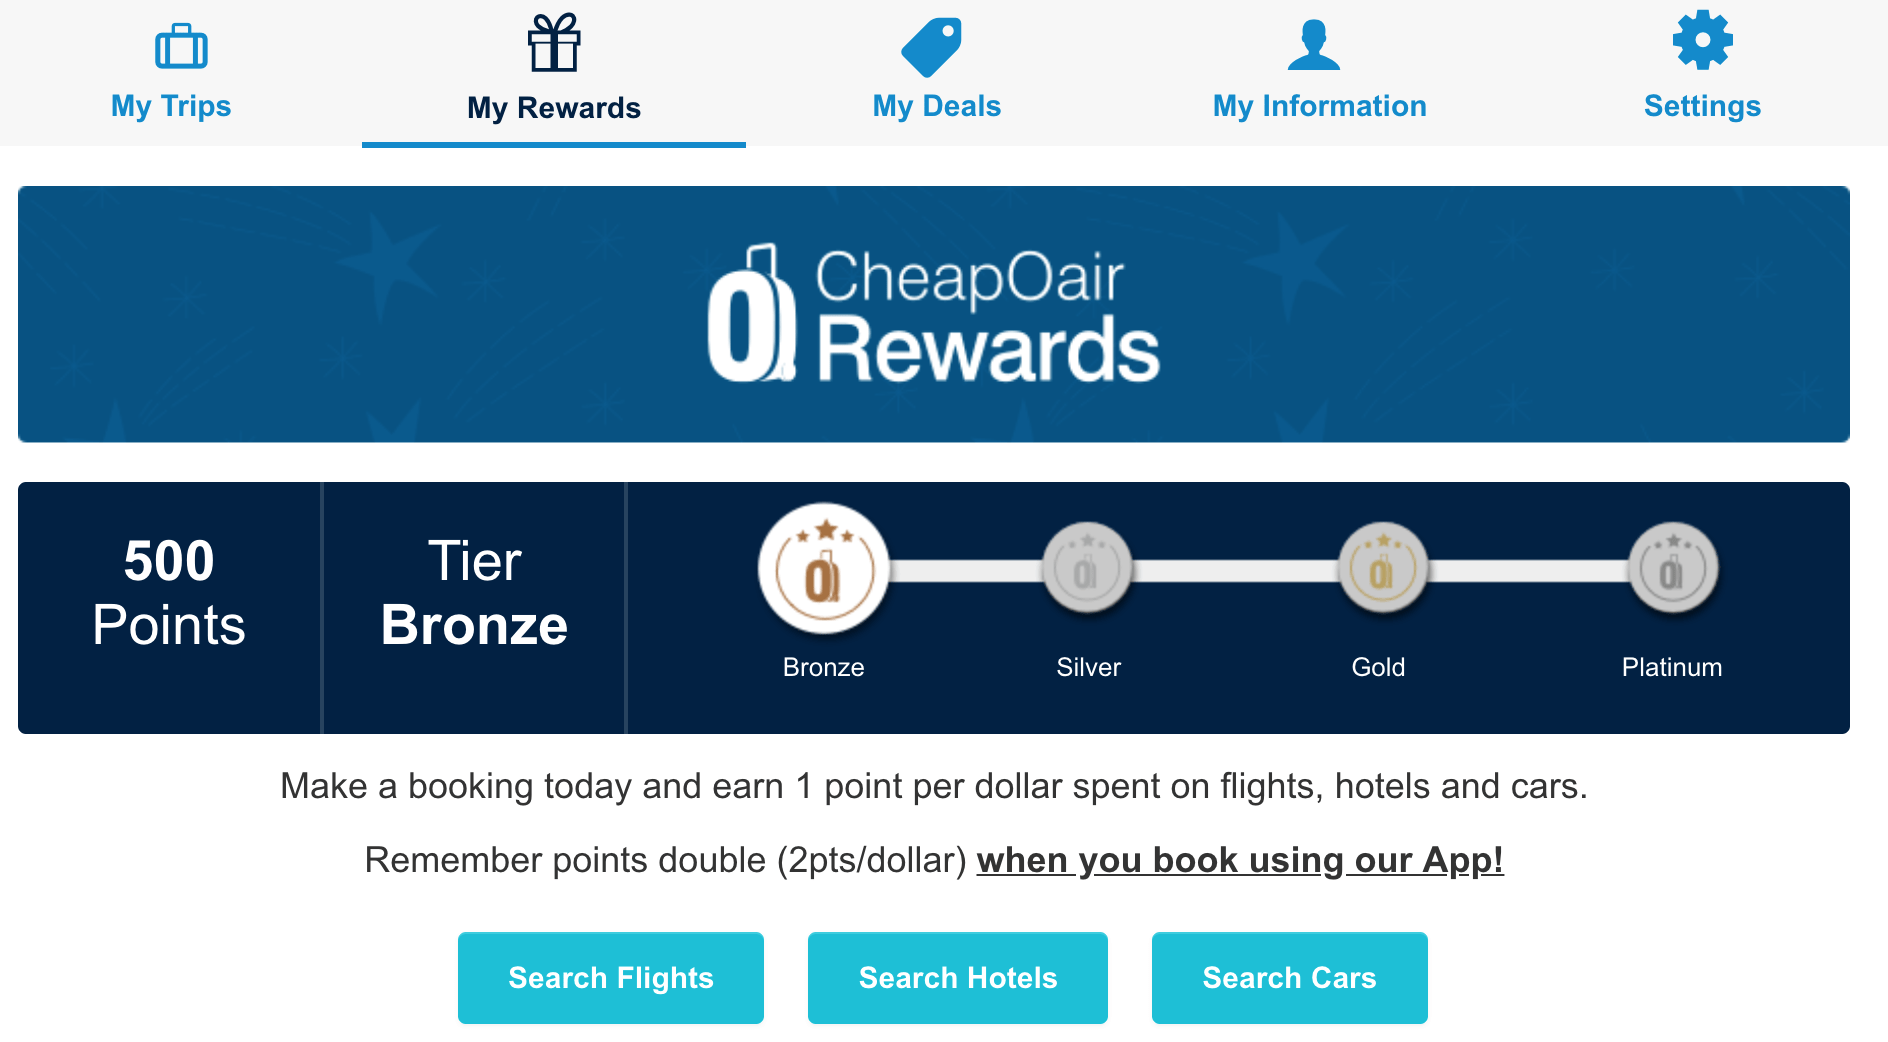 The Ultimate Guide To CheapOair - Will It Save You Money? [2019]